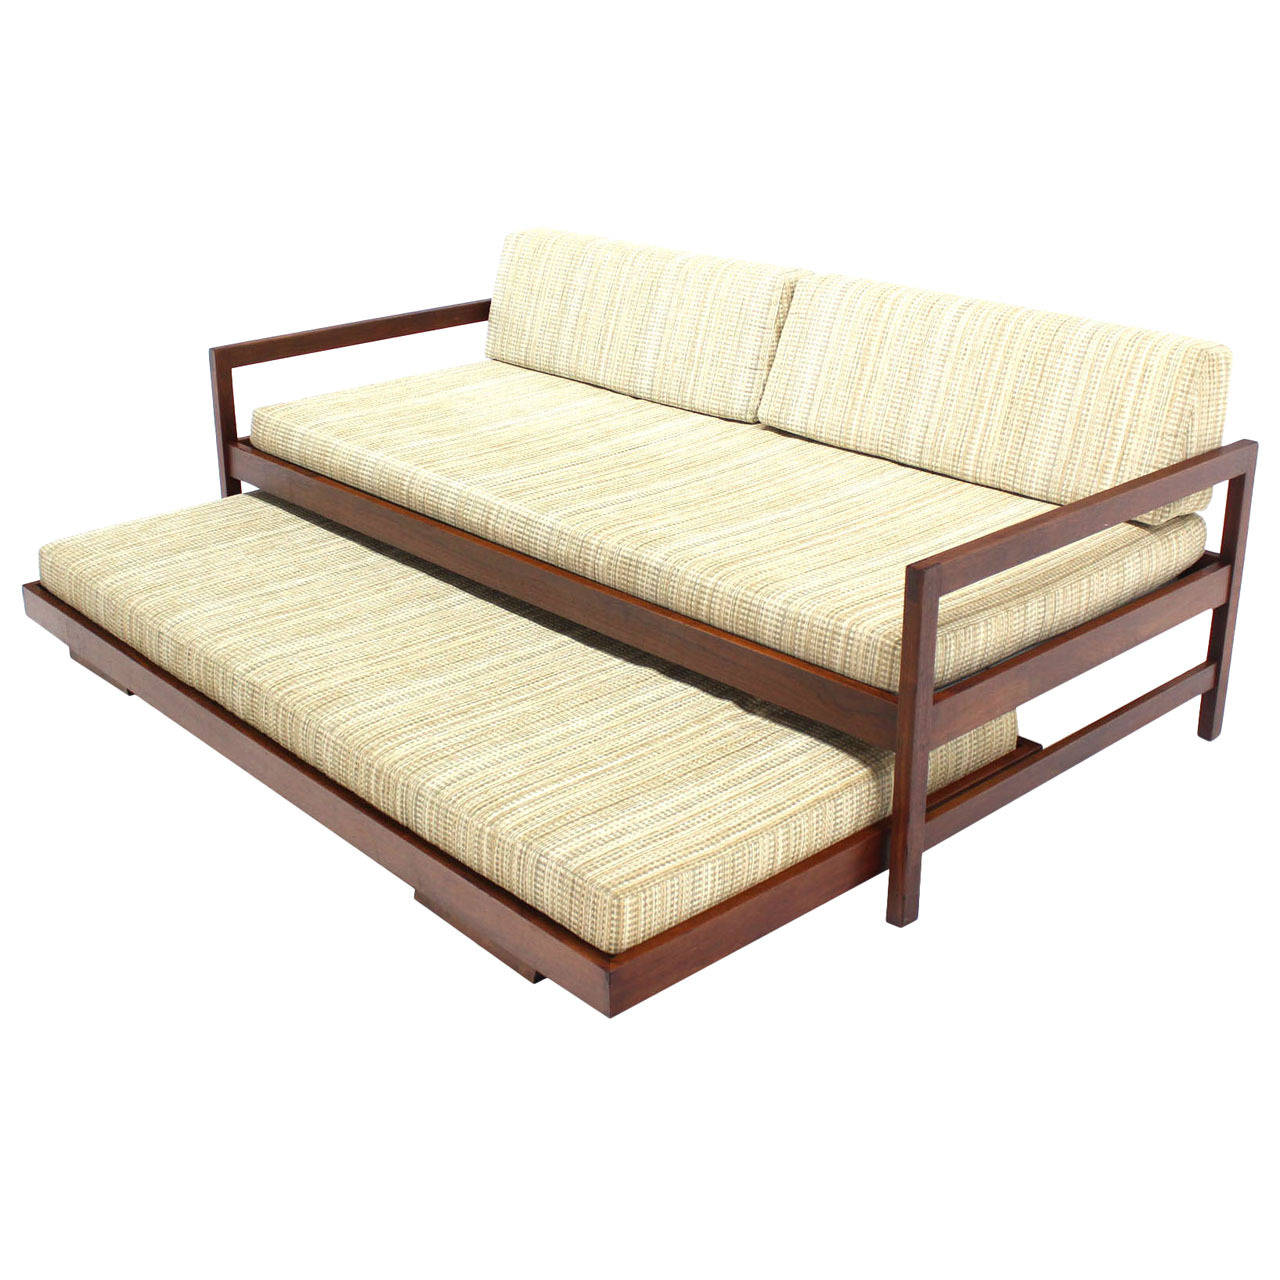 Solid Walnut Frame Mid-Century Modern Trundle, Pull-Out Daybed For Sale